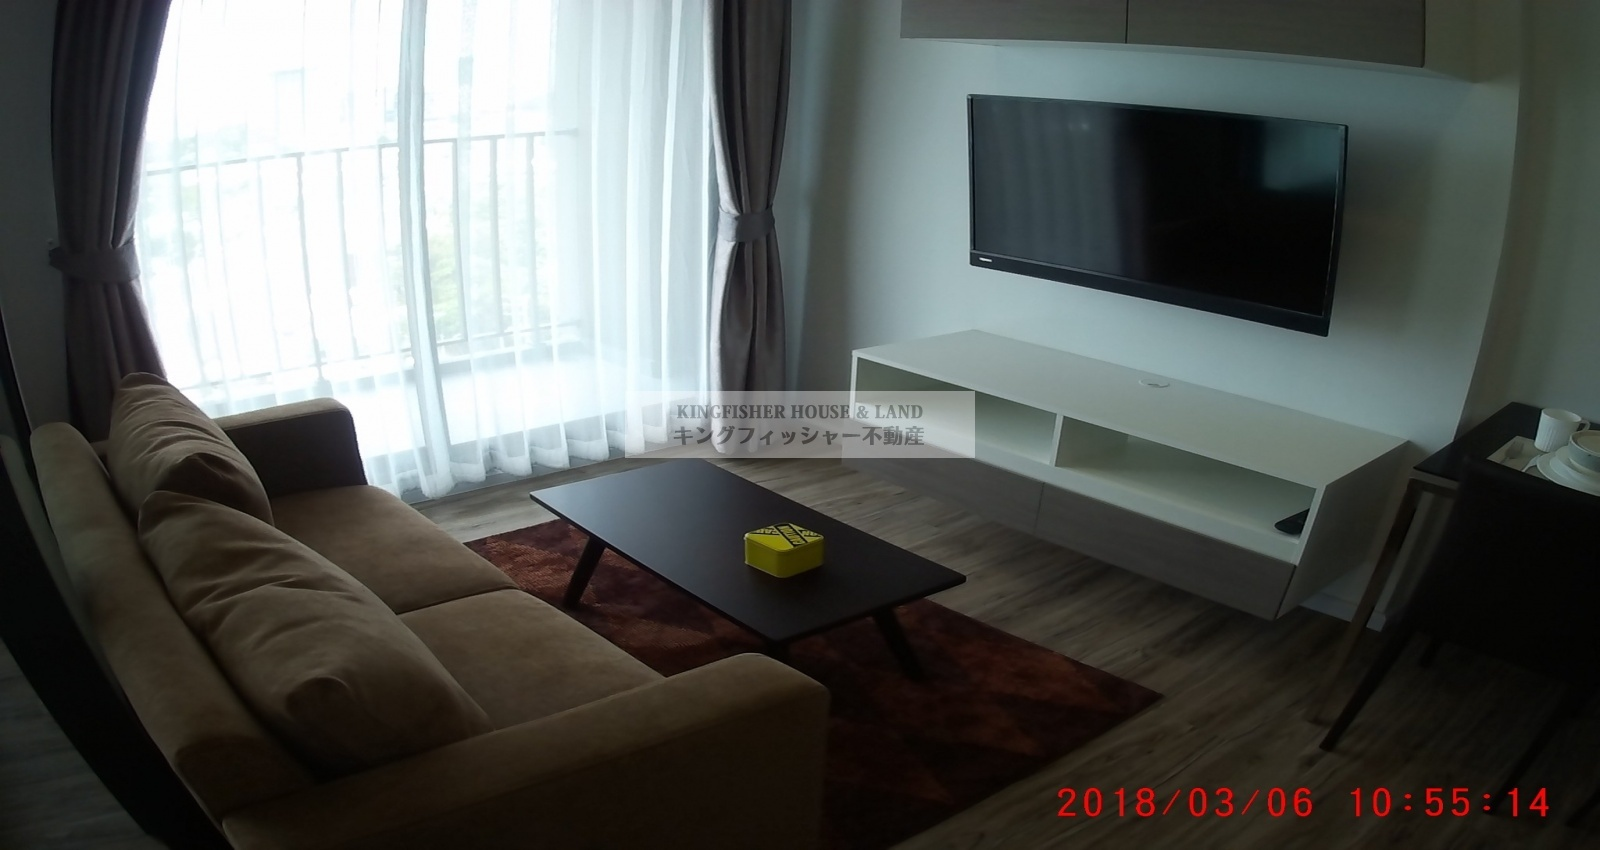 1 Bedrooms, Condominium, For Rent, 1 Bathrooms, Listing ID 1217, Sriracha, Thailand, 20110,